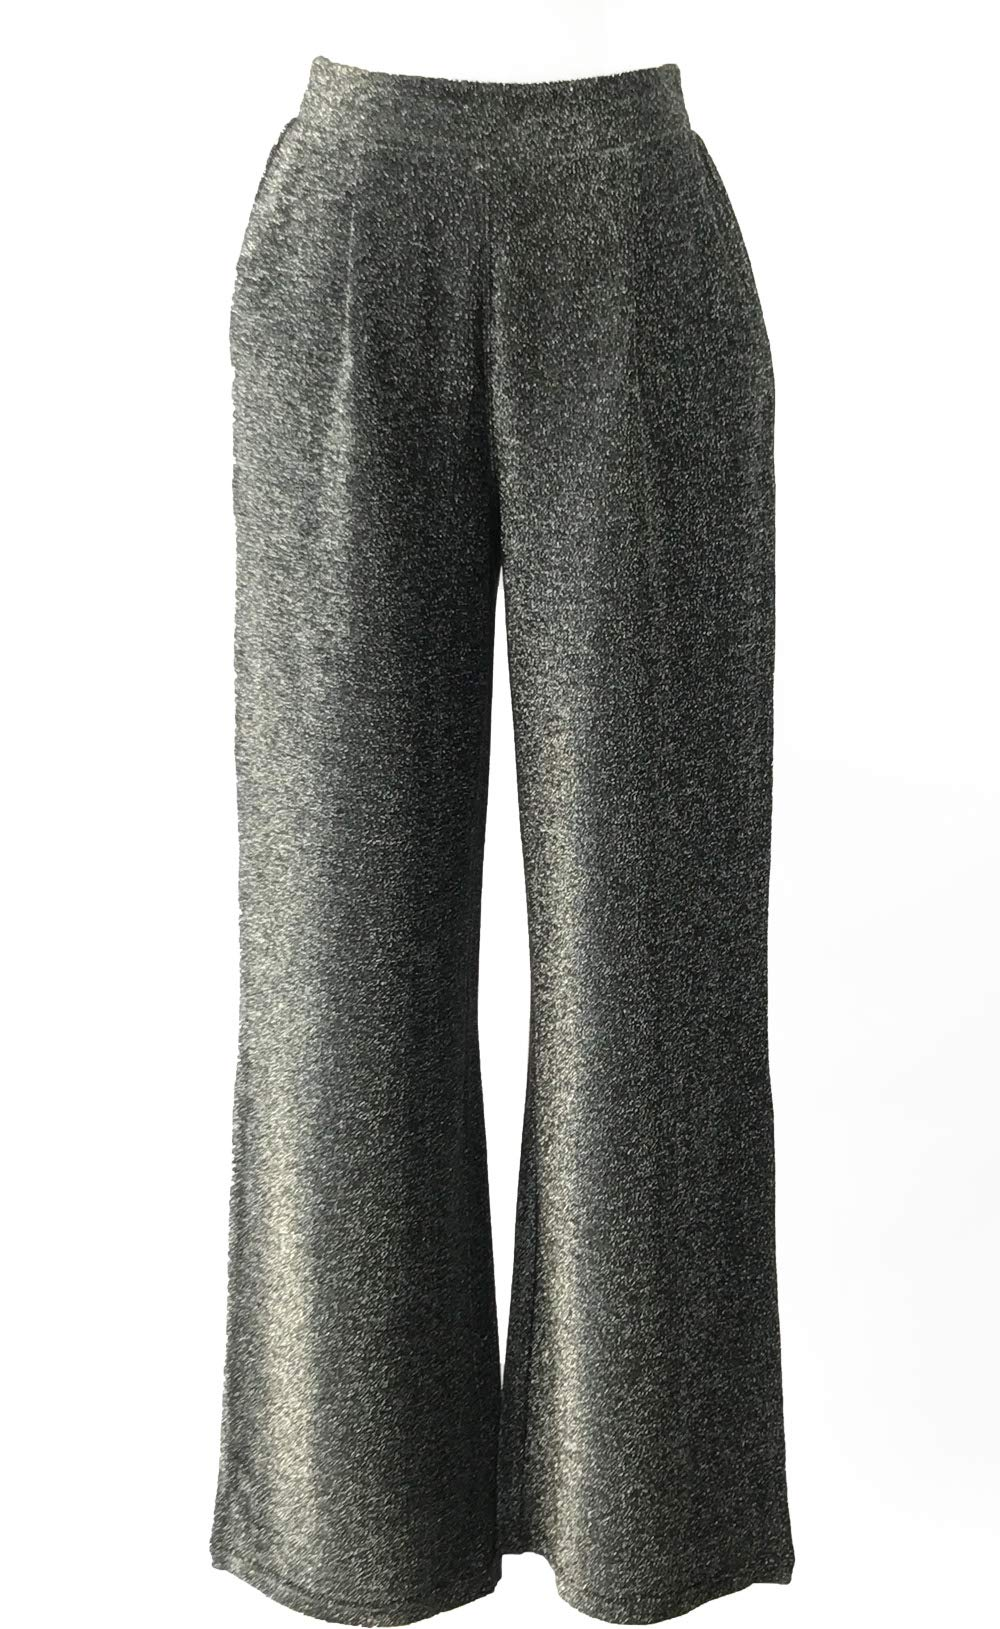 Blend 4 Thee Women Casual Wide Leg Pants, Elastic Waistband with Pockets (Wide Leg-Shiny Silver Lurex, XS)